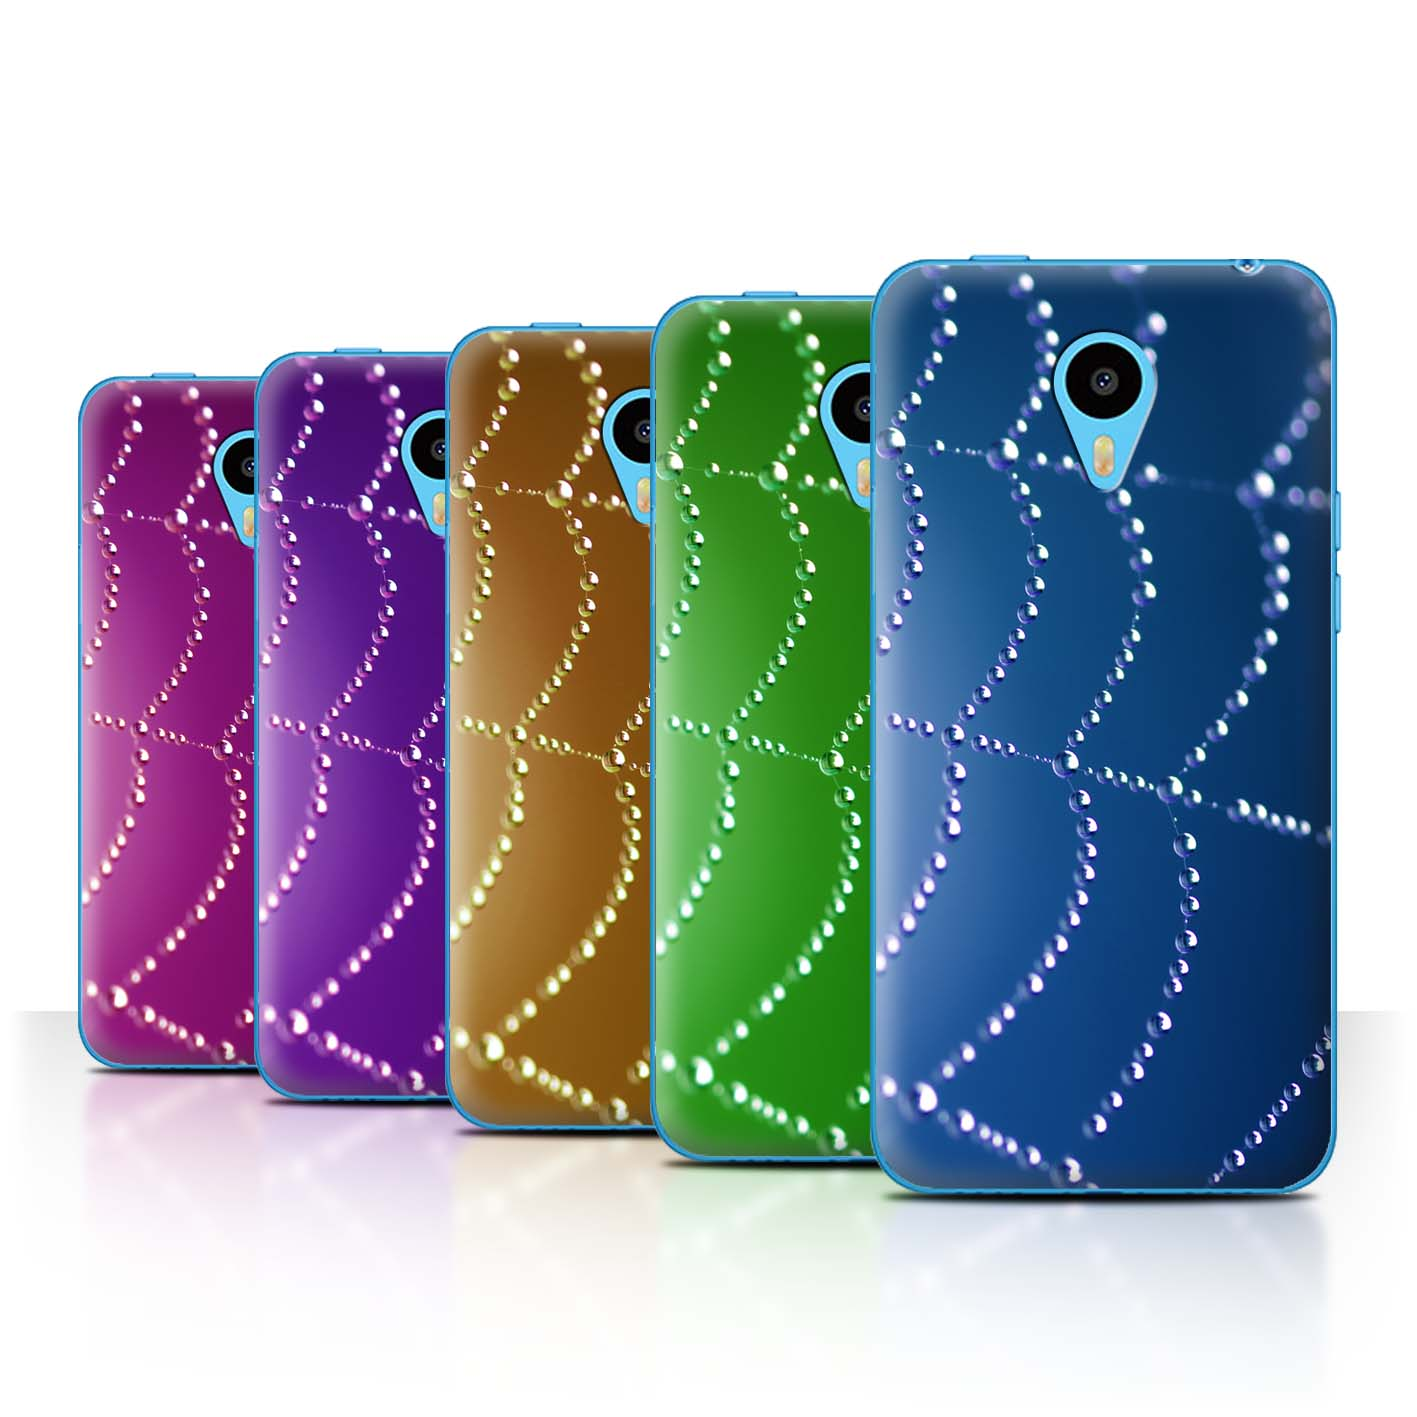 STUFF4-Back-Case-Cover-Skin-for-Meizu-M1N-Spider-Web-Pearls